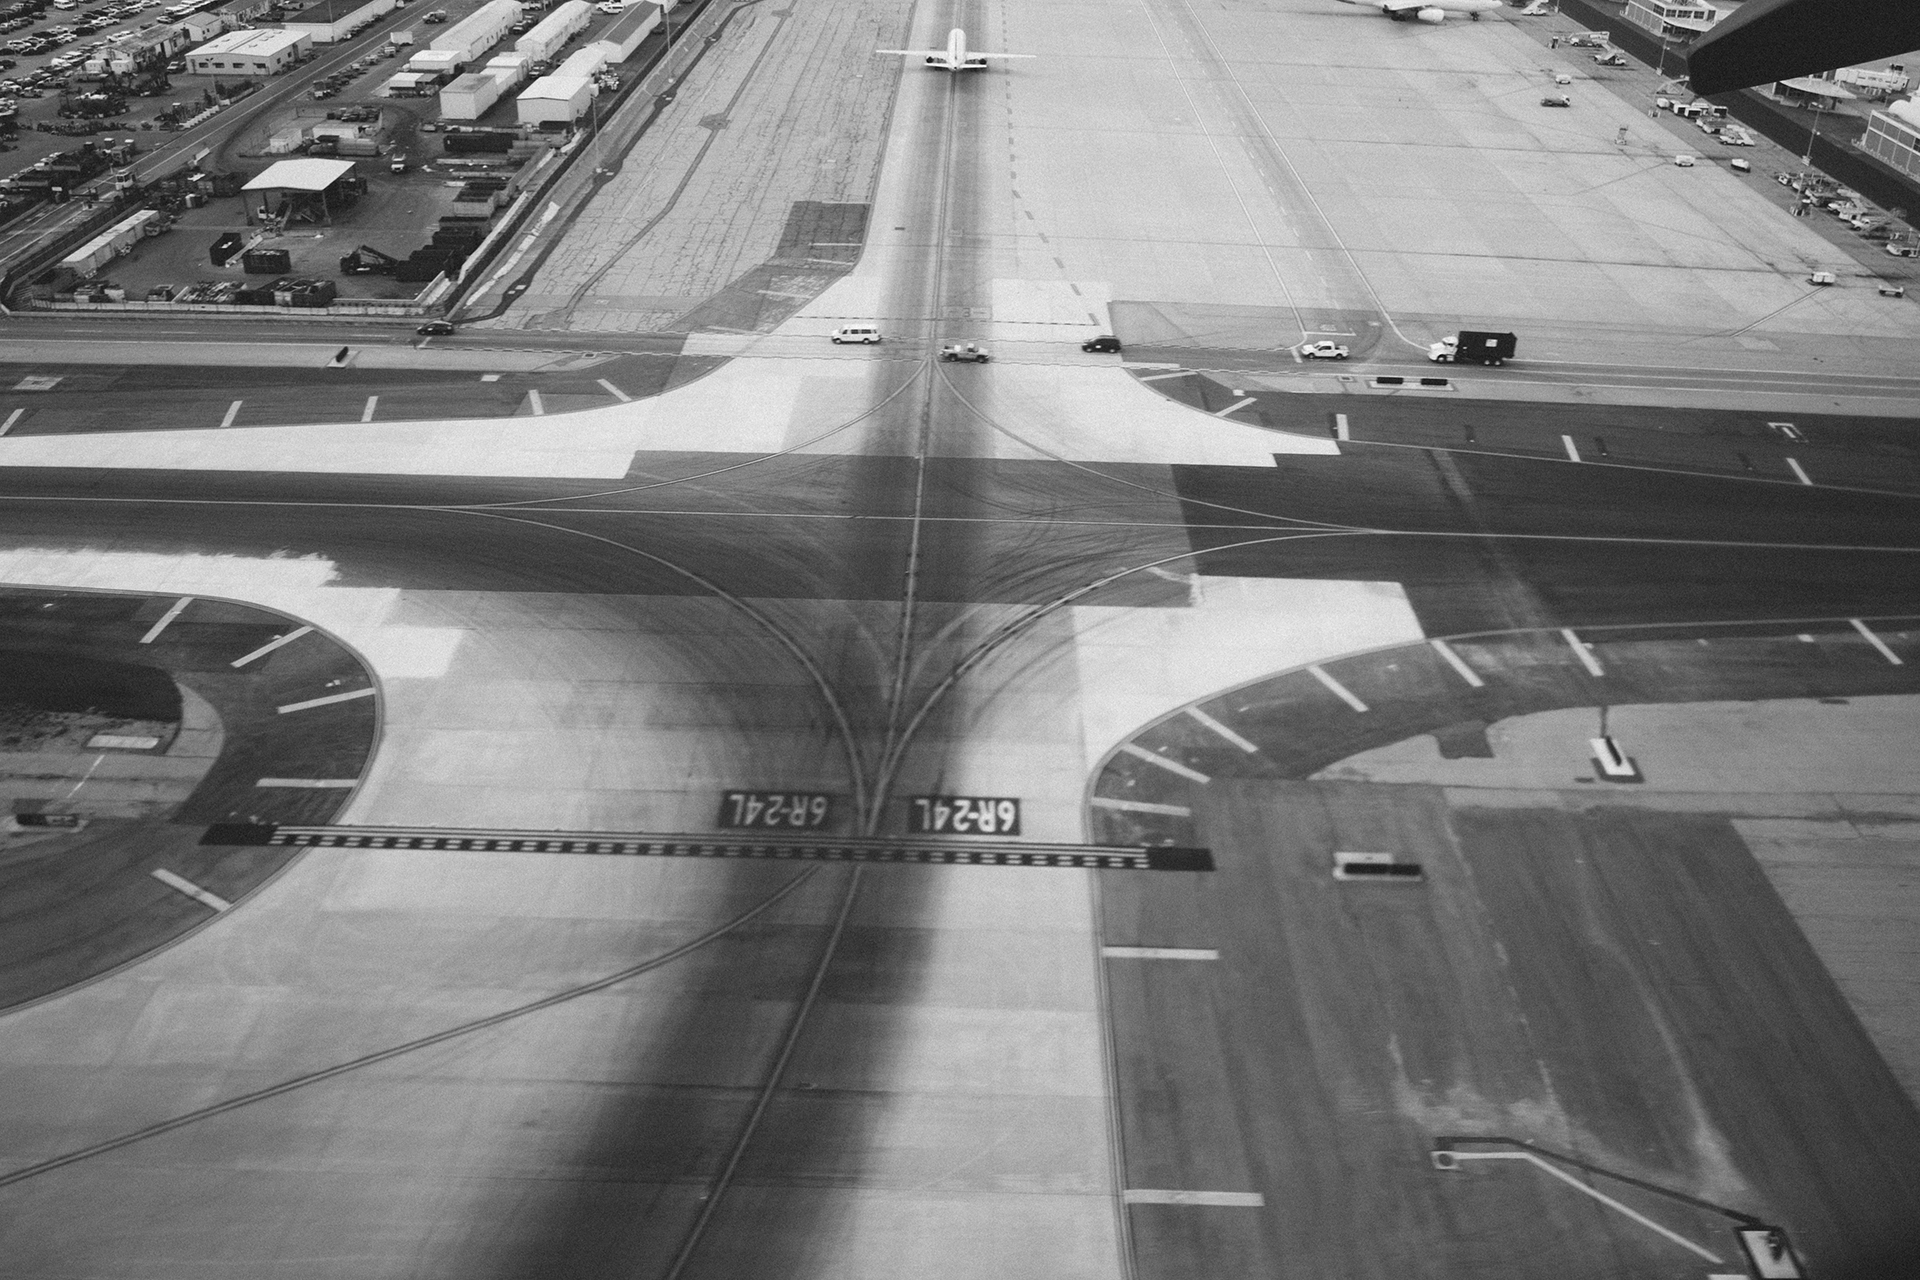 Airport runway, airport, runway, tarmac, airplanes, transportation, travel, black and white